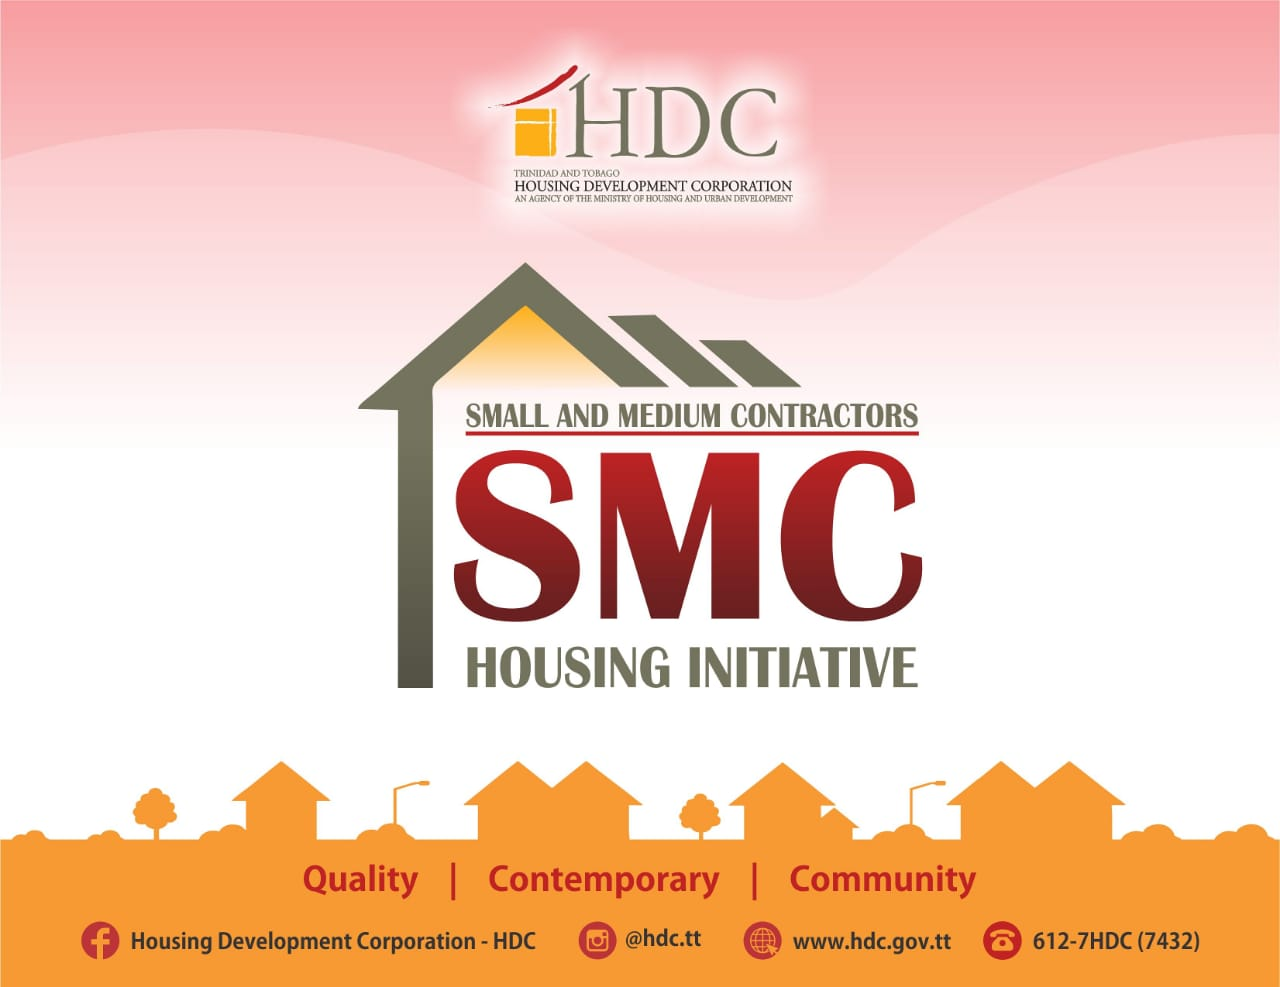 Making Home Ownership Affordable with the SMC Housing Initiative